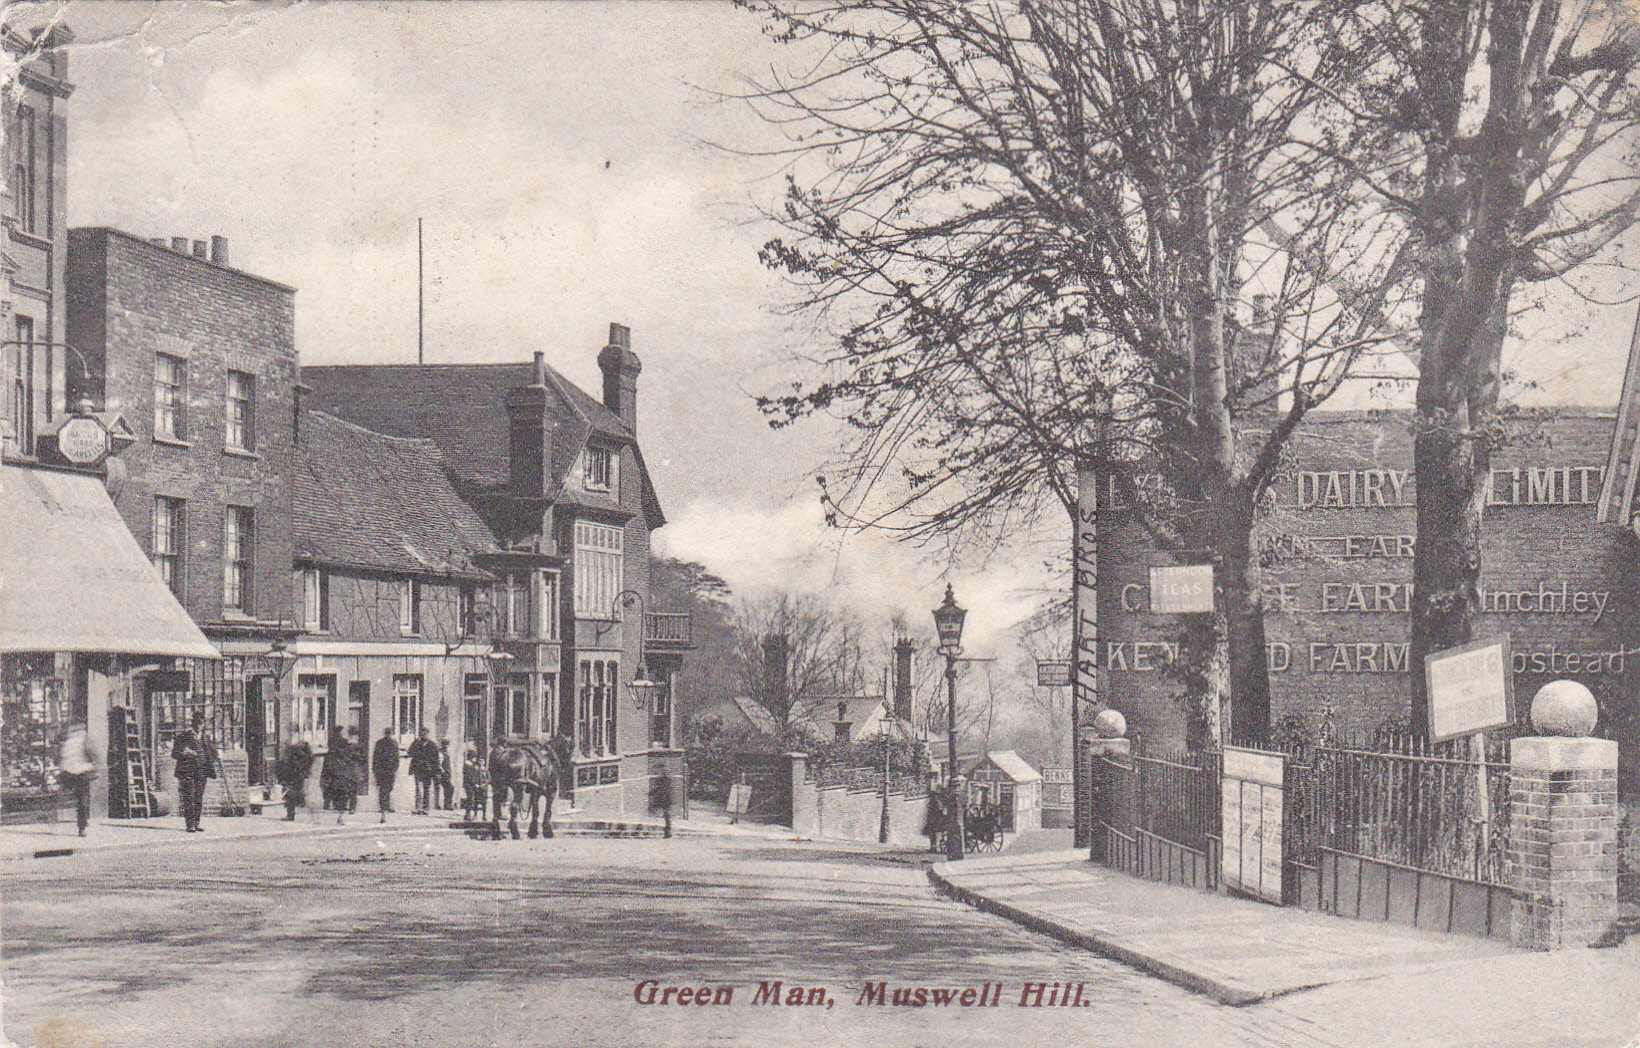 Green Man Pub Muswell Hill 1909